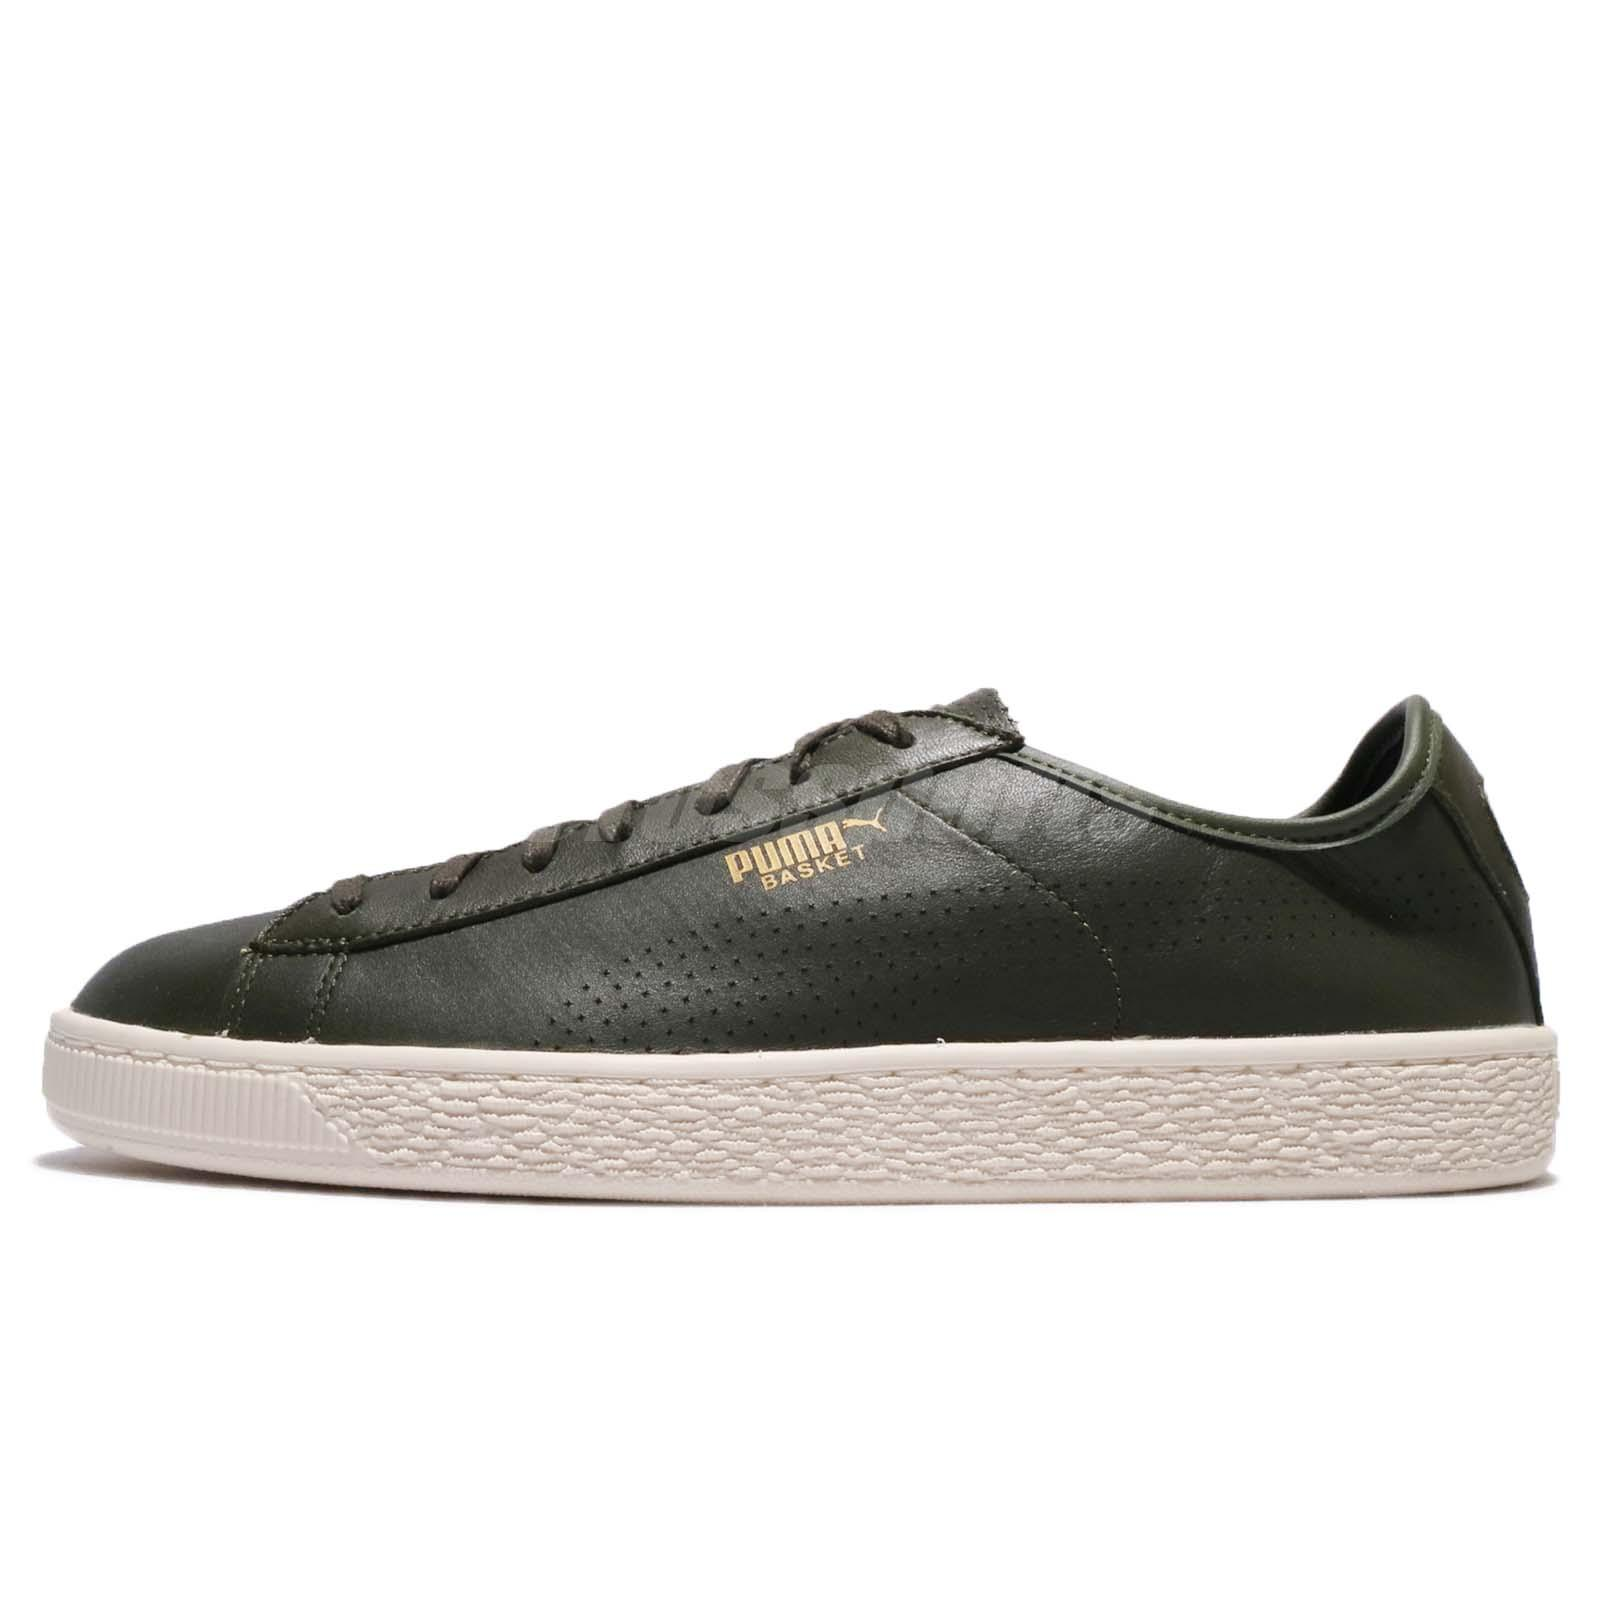 aad2795bb772 Puma Basket Classic Soft Leather Olive Ivory Men Shoes Sneakers 363824-03